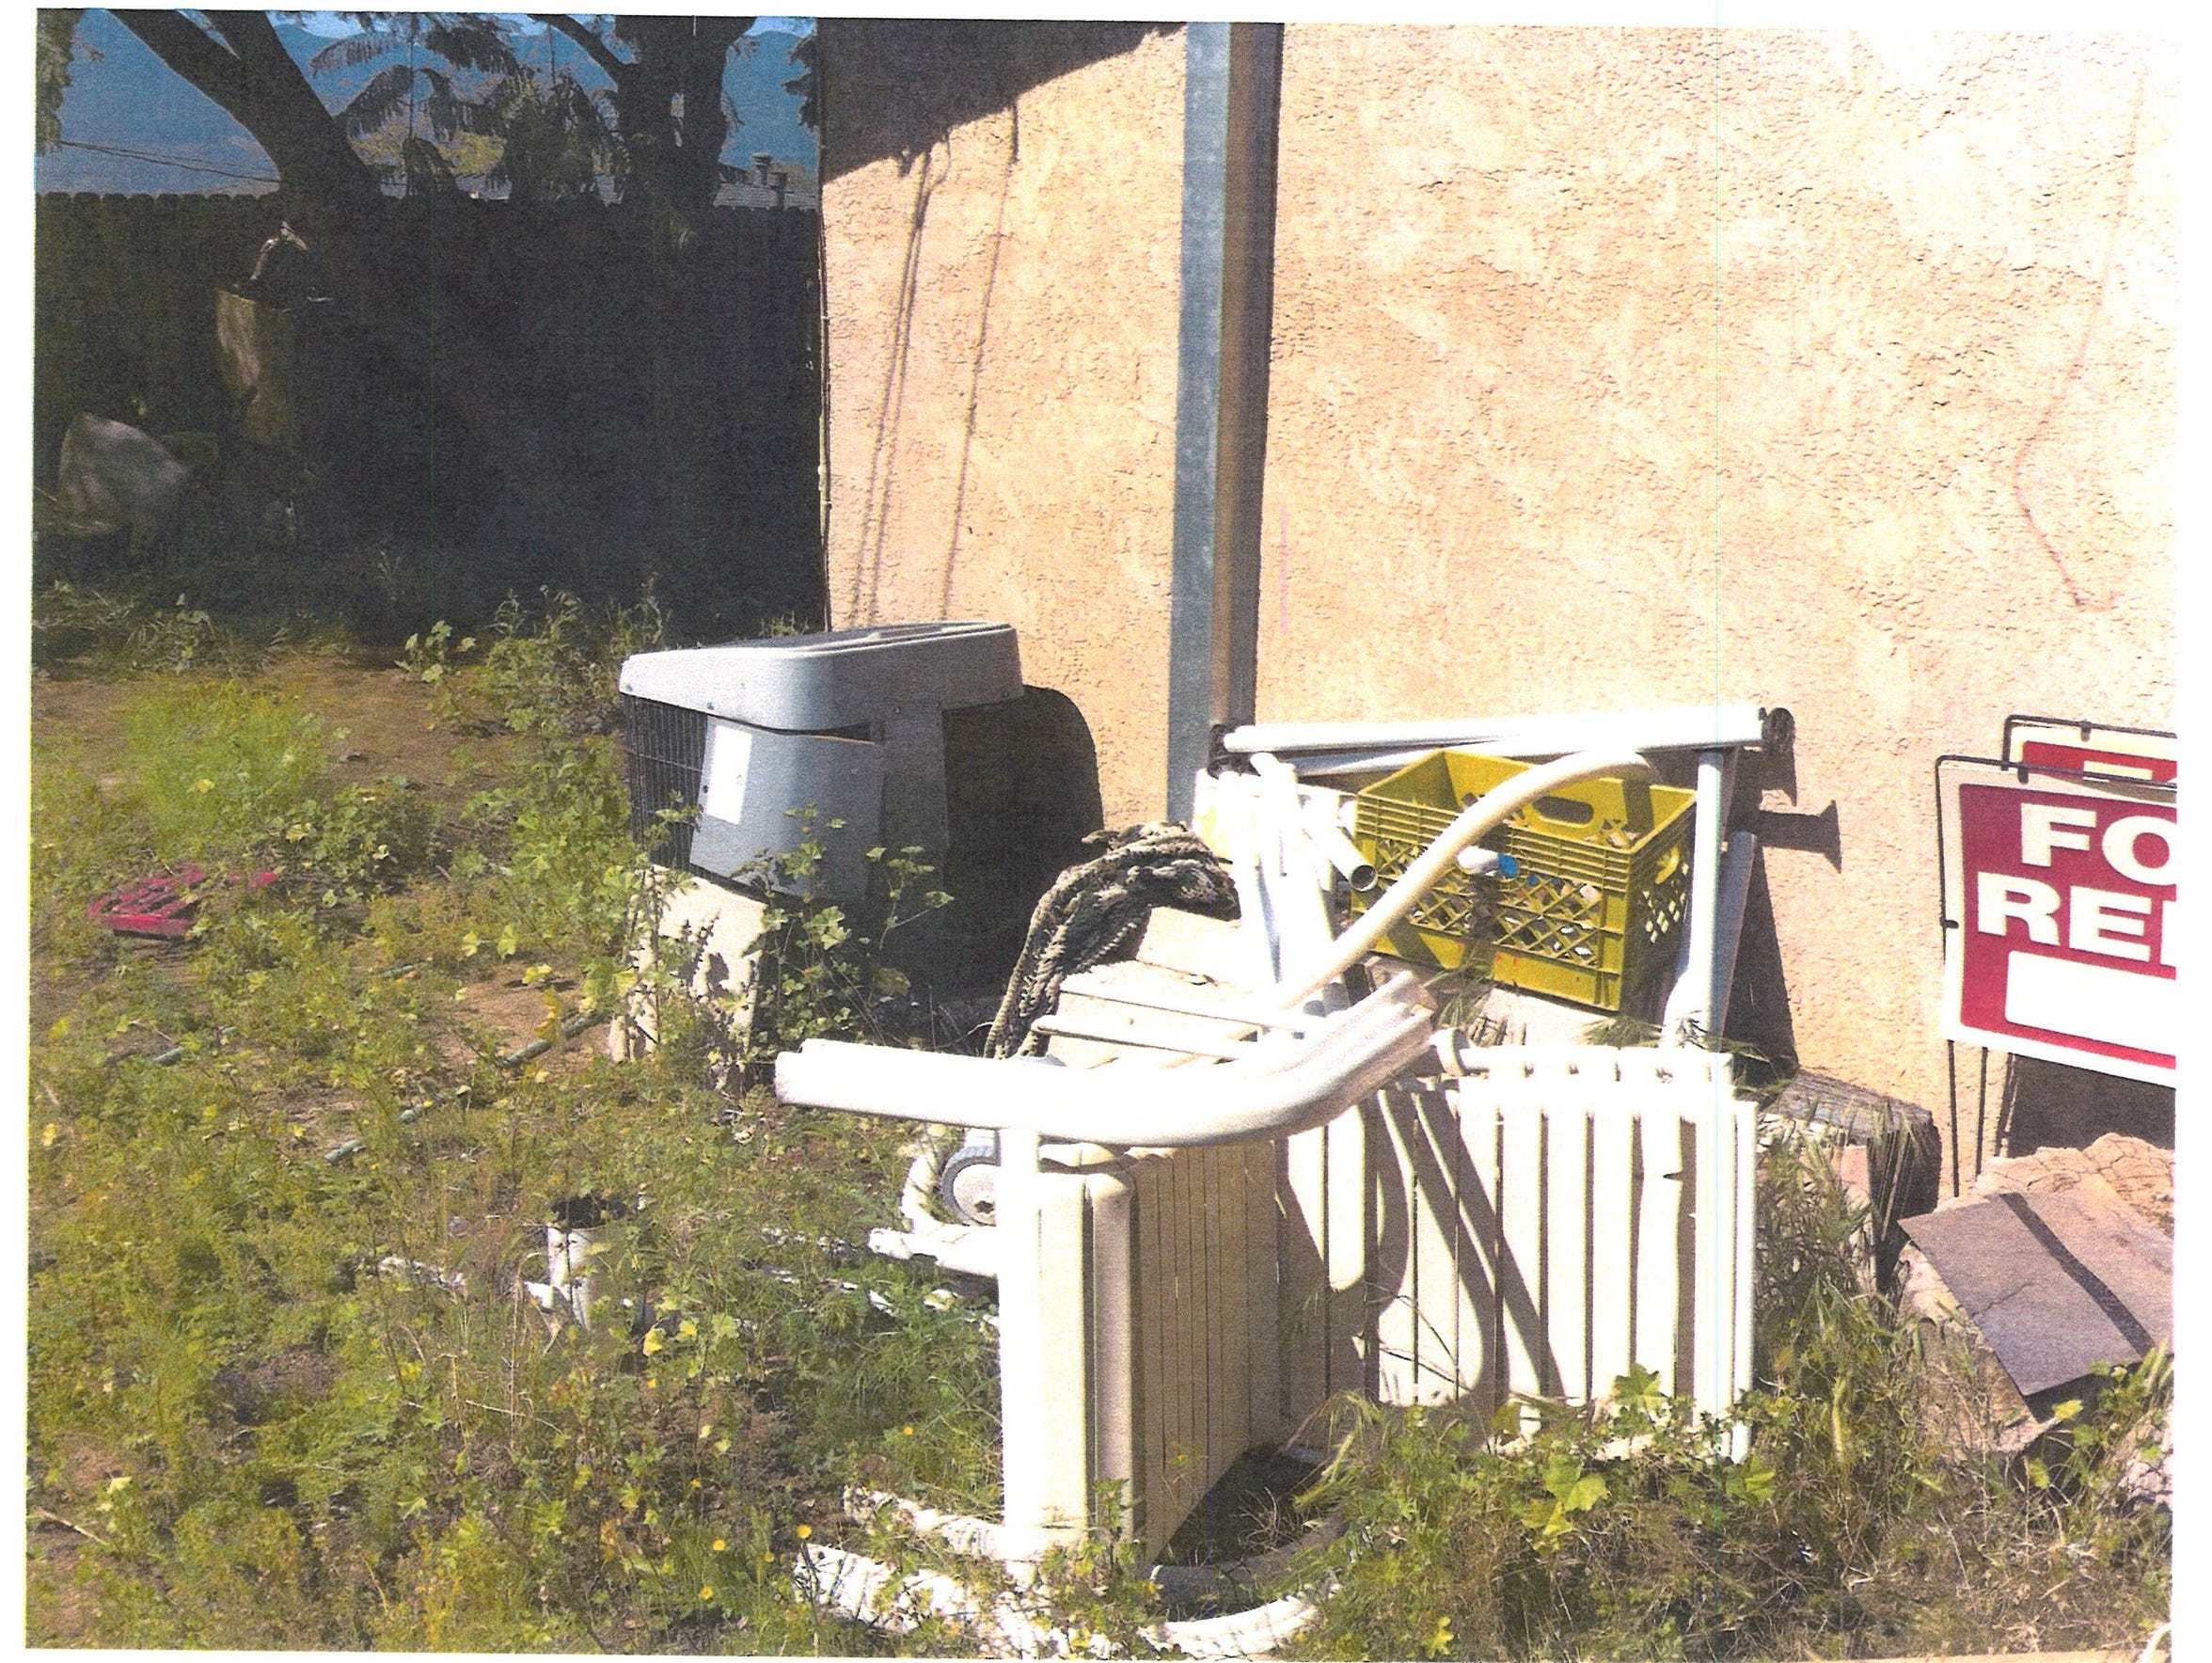 It was in this spot, a side yard in Lake Elsinore,